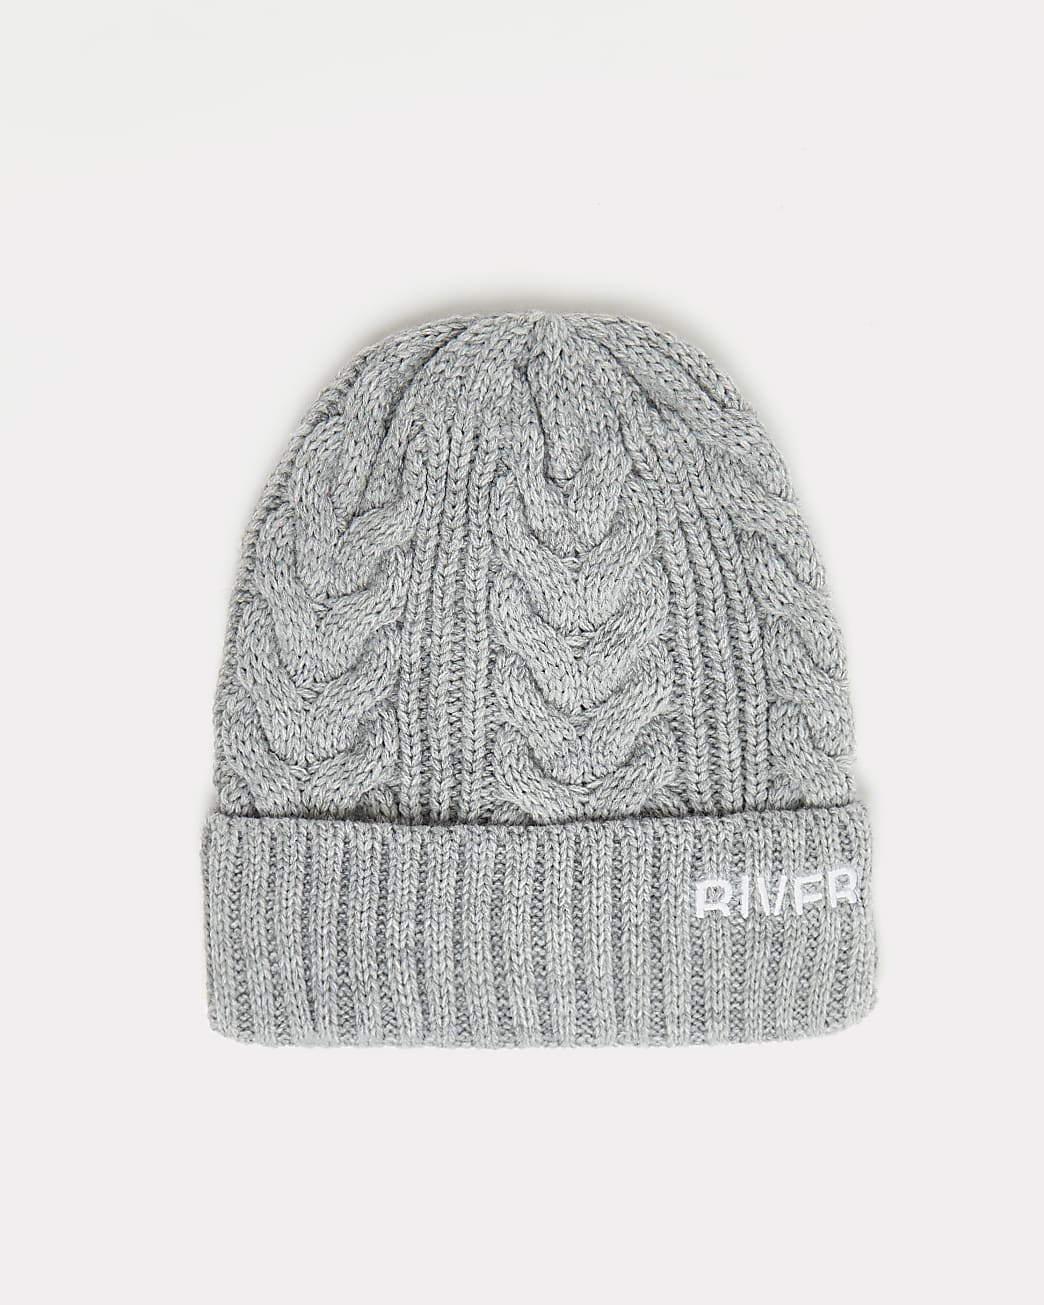 Grey RI branded cable knit beanie hat